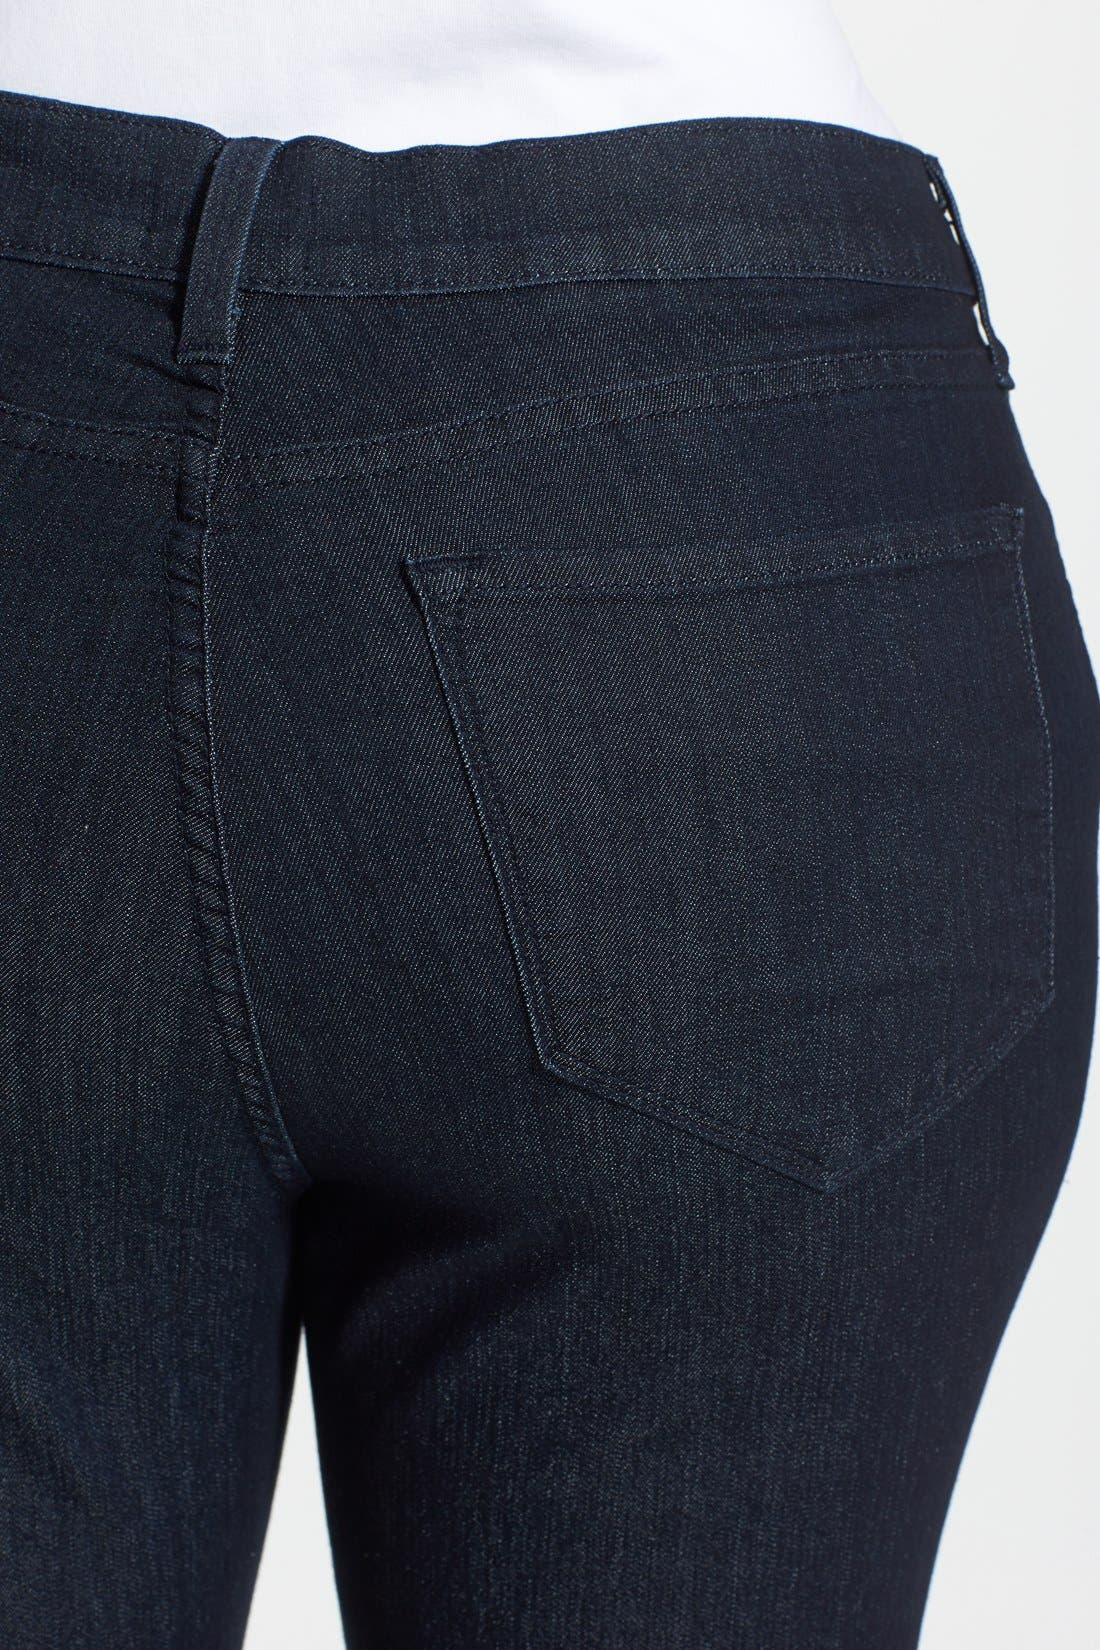 Alternate Image 3  - KUT from the Kloth 'Diana' Stretch Skinny Jeans (Discrete) (Plus Size)